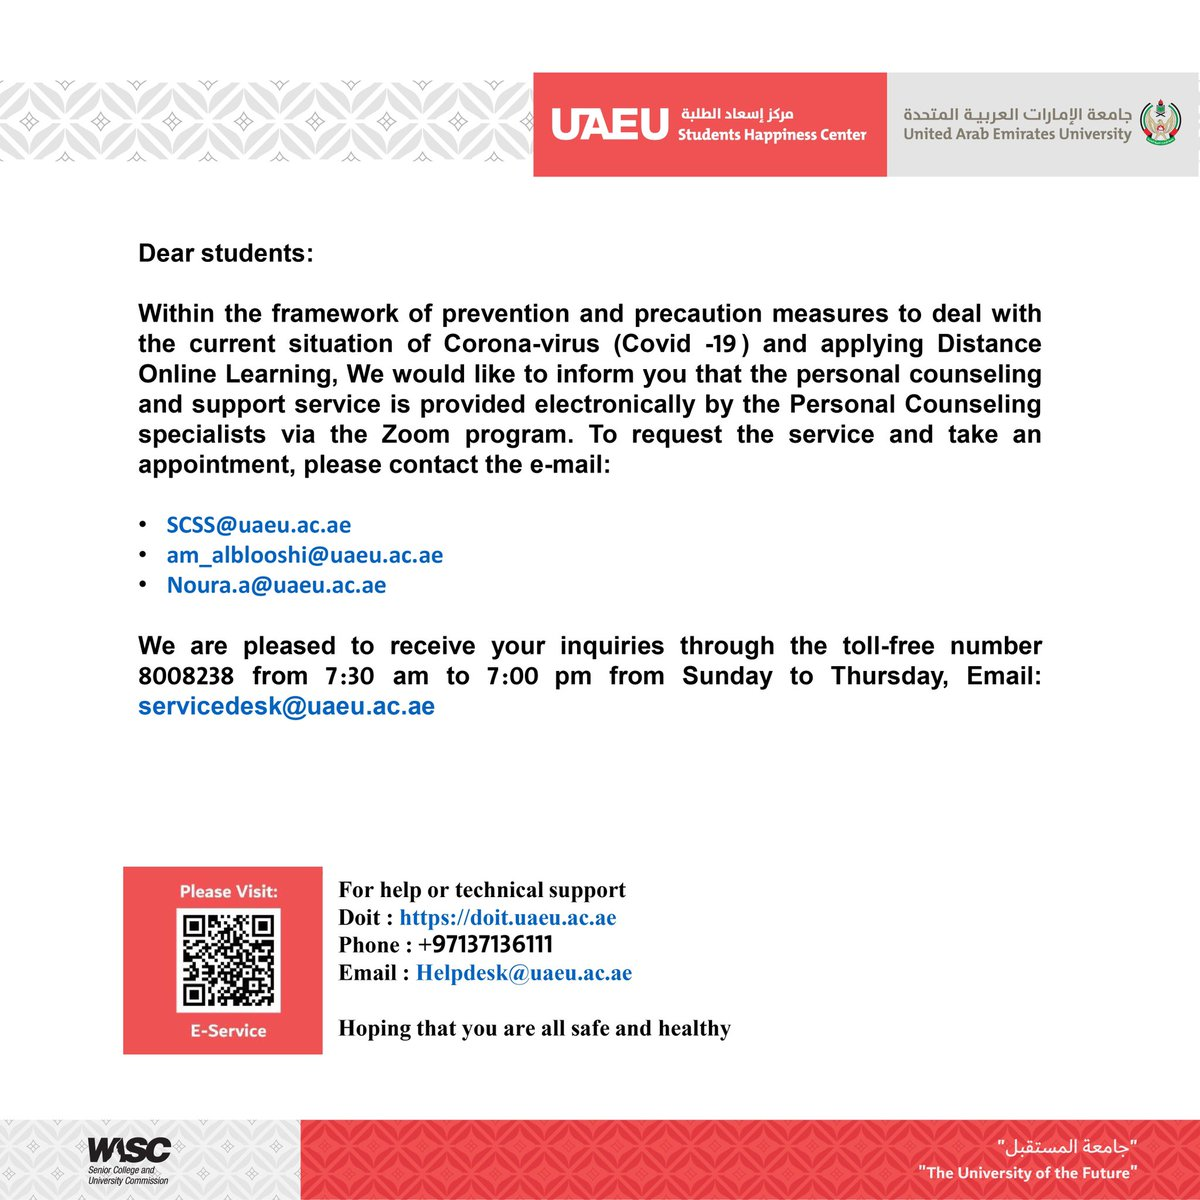 Within the framework of prevention and precaution measures to deal with the current situation We are pleased to inform you of providing personal counseling and support service  electronically #United_Arab_Emirates_University